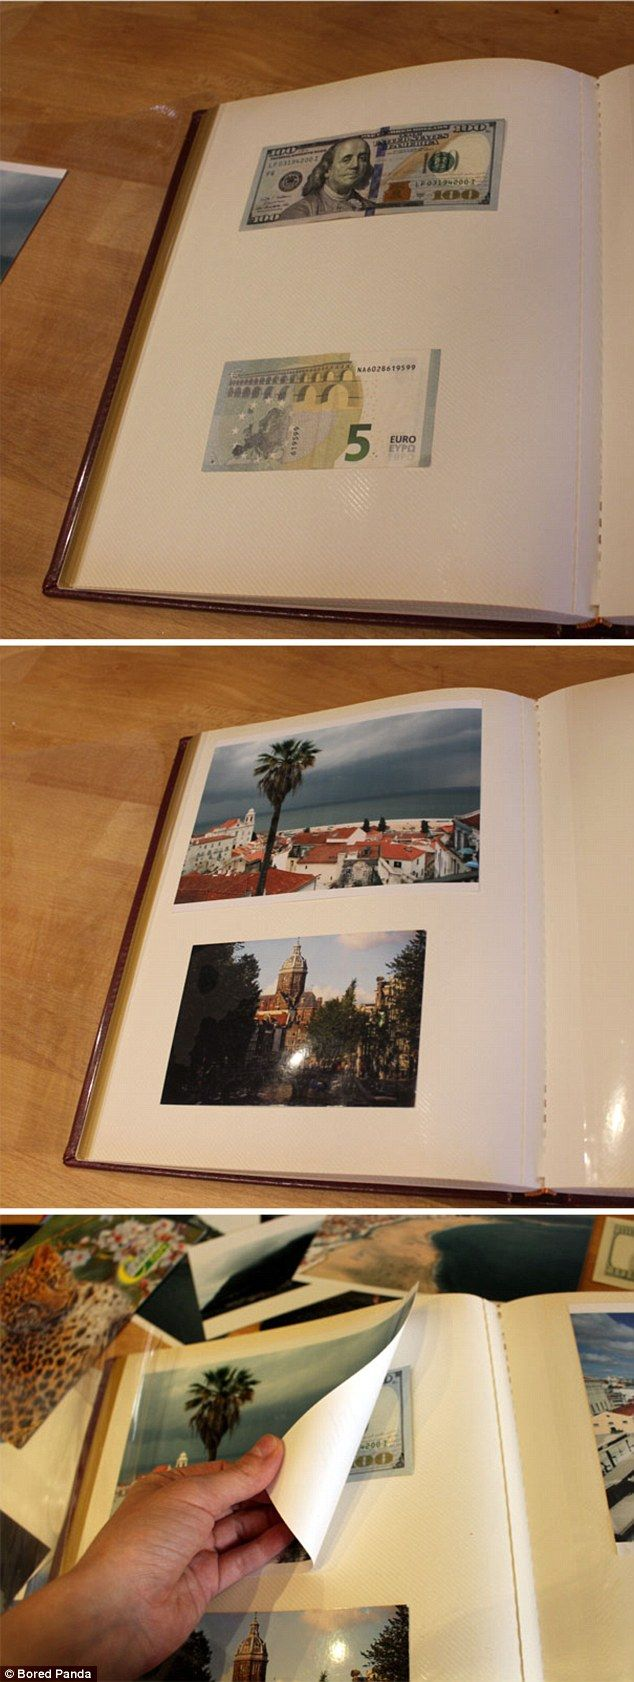 Try hiding money, especially high value bills, behind the pictures in a magnetic photo album